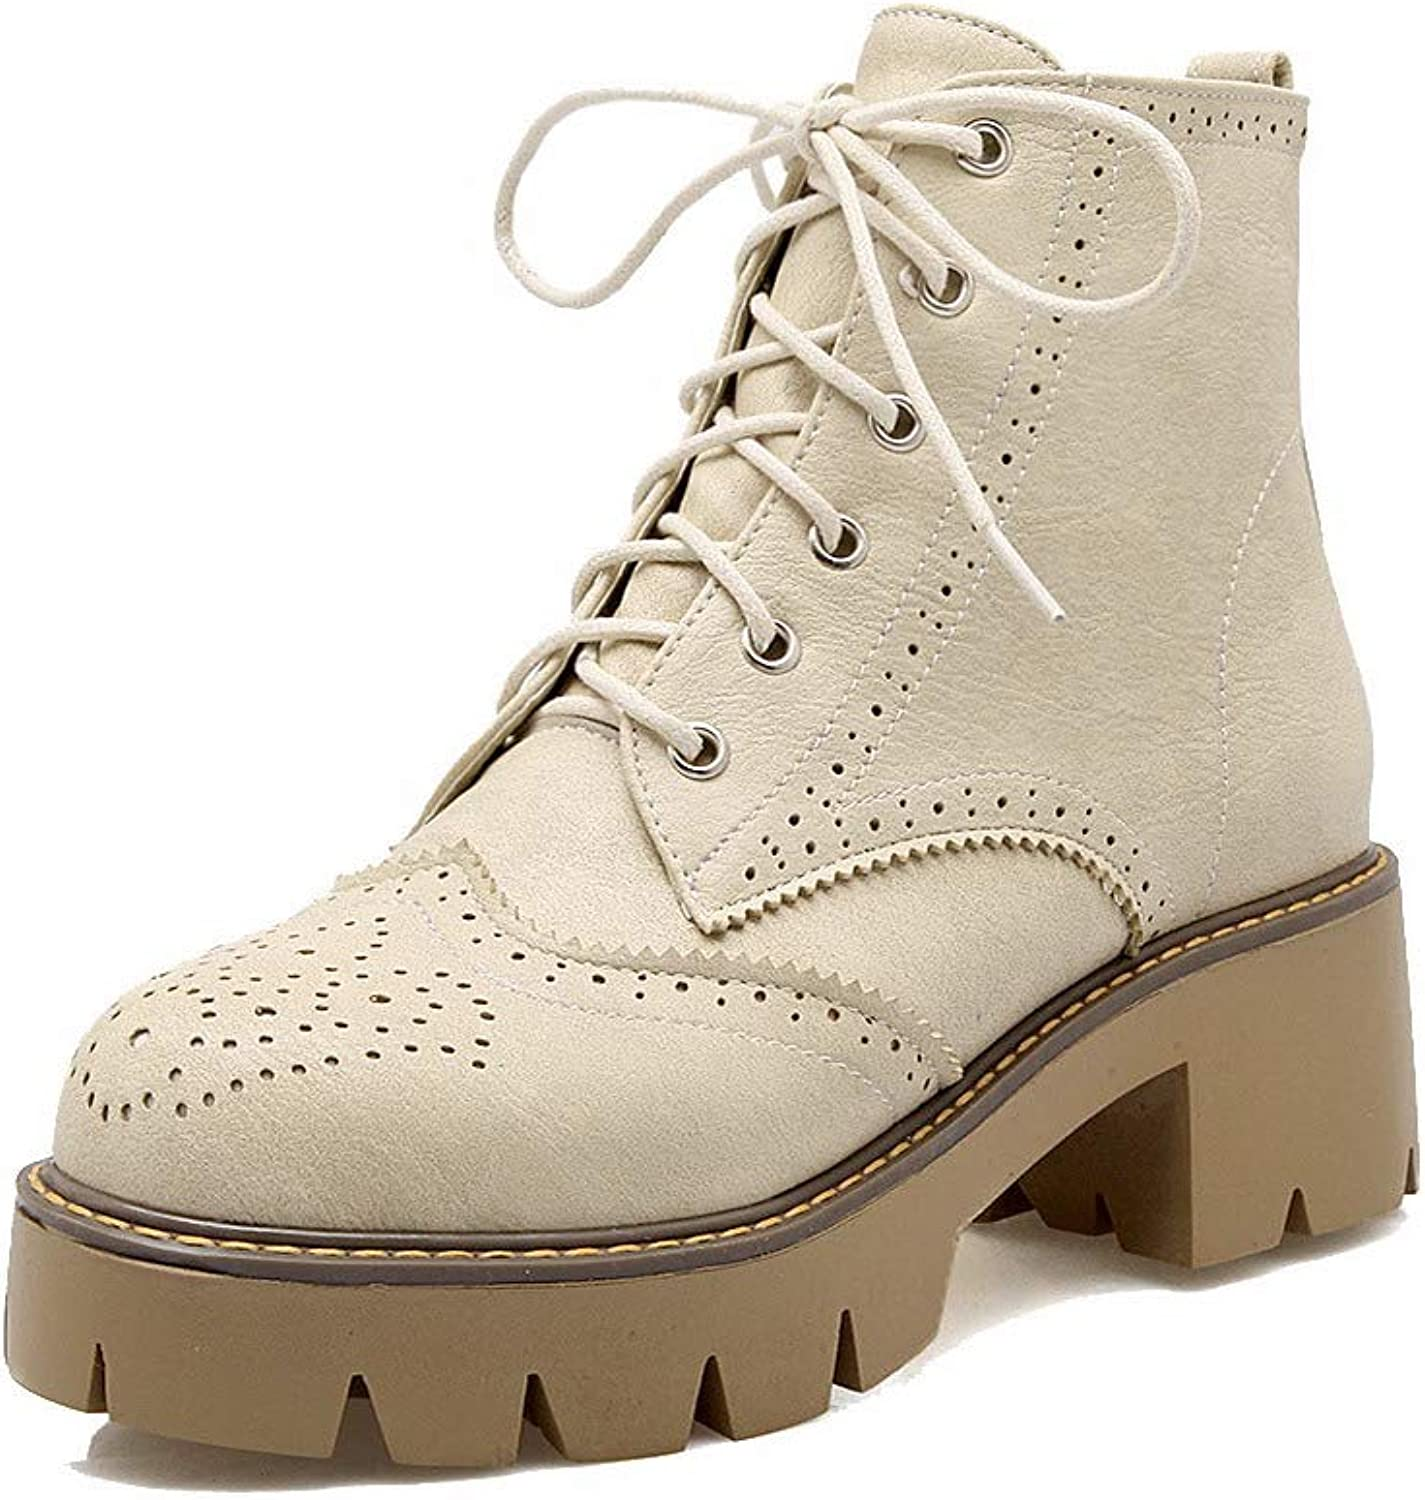 AllhqFashion Women's Ankle-High Solid Lace-Up Round-Toe Kitten-Heels Boots, FBUXD127439